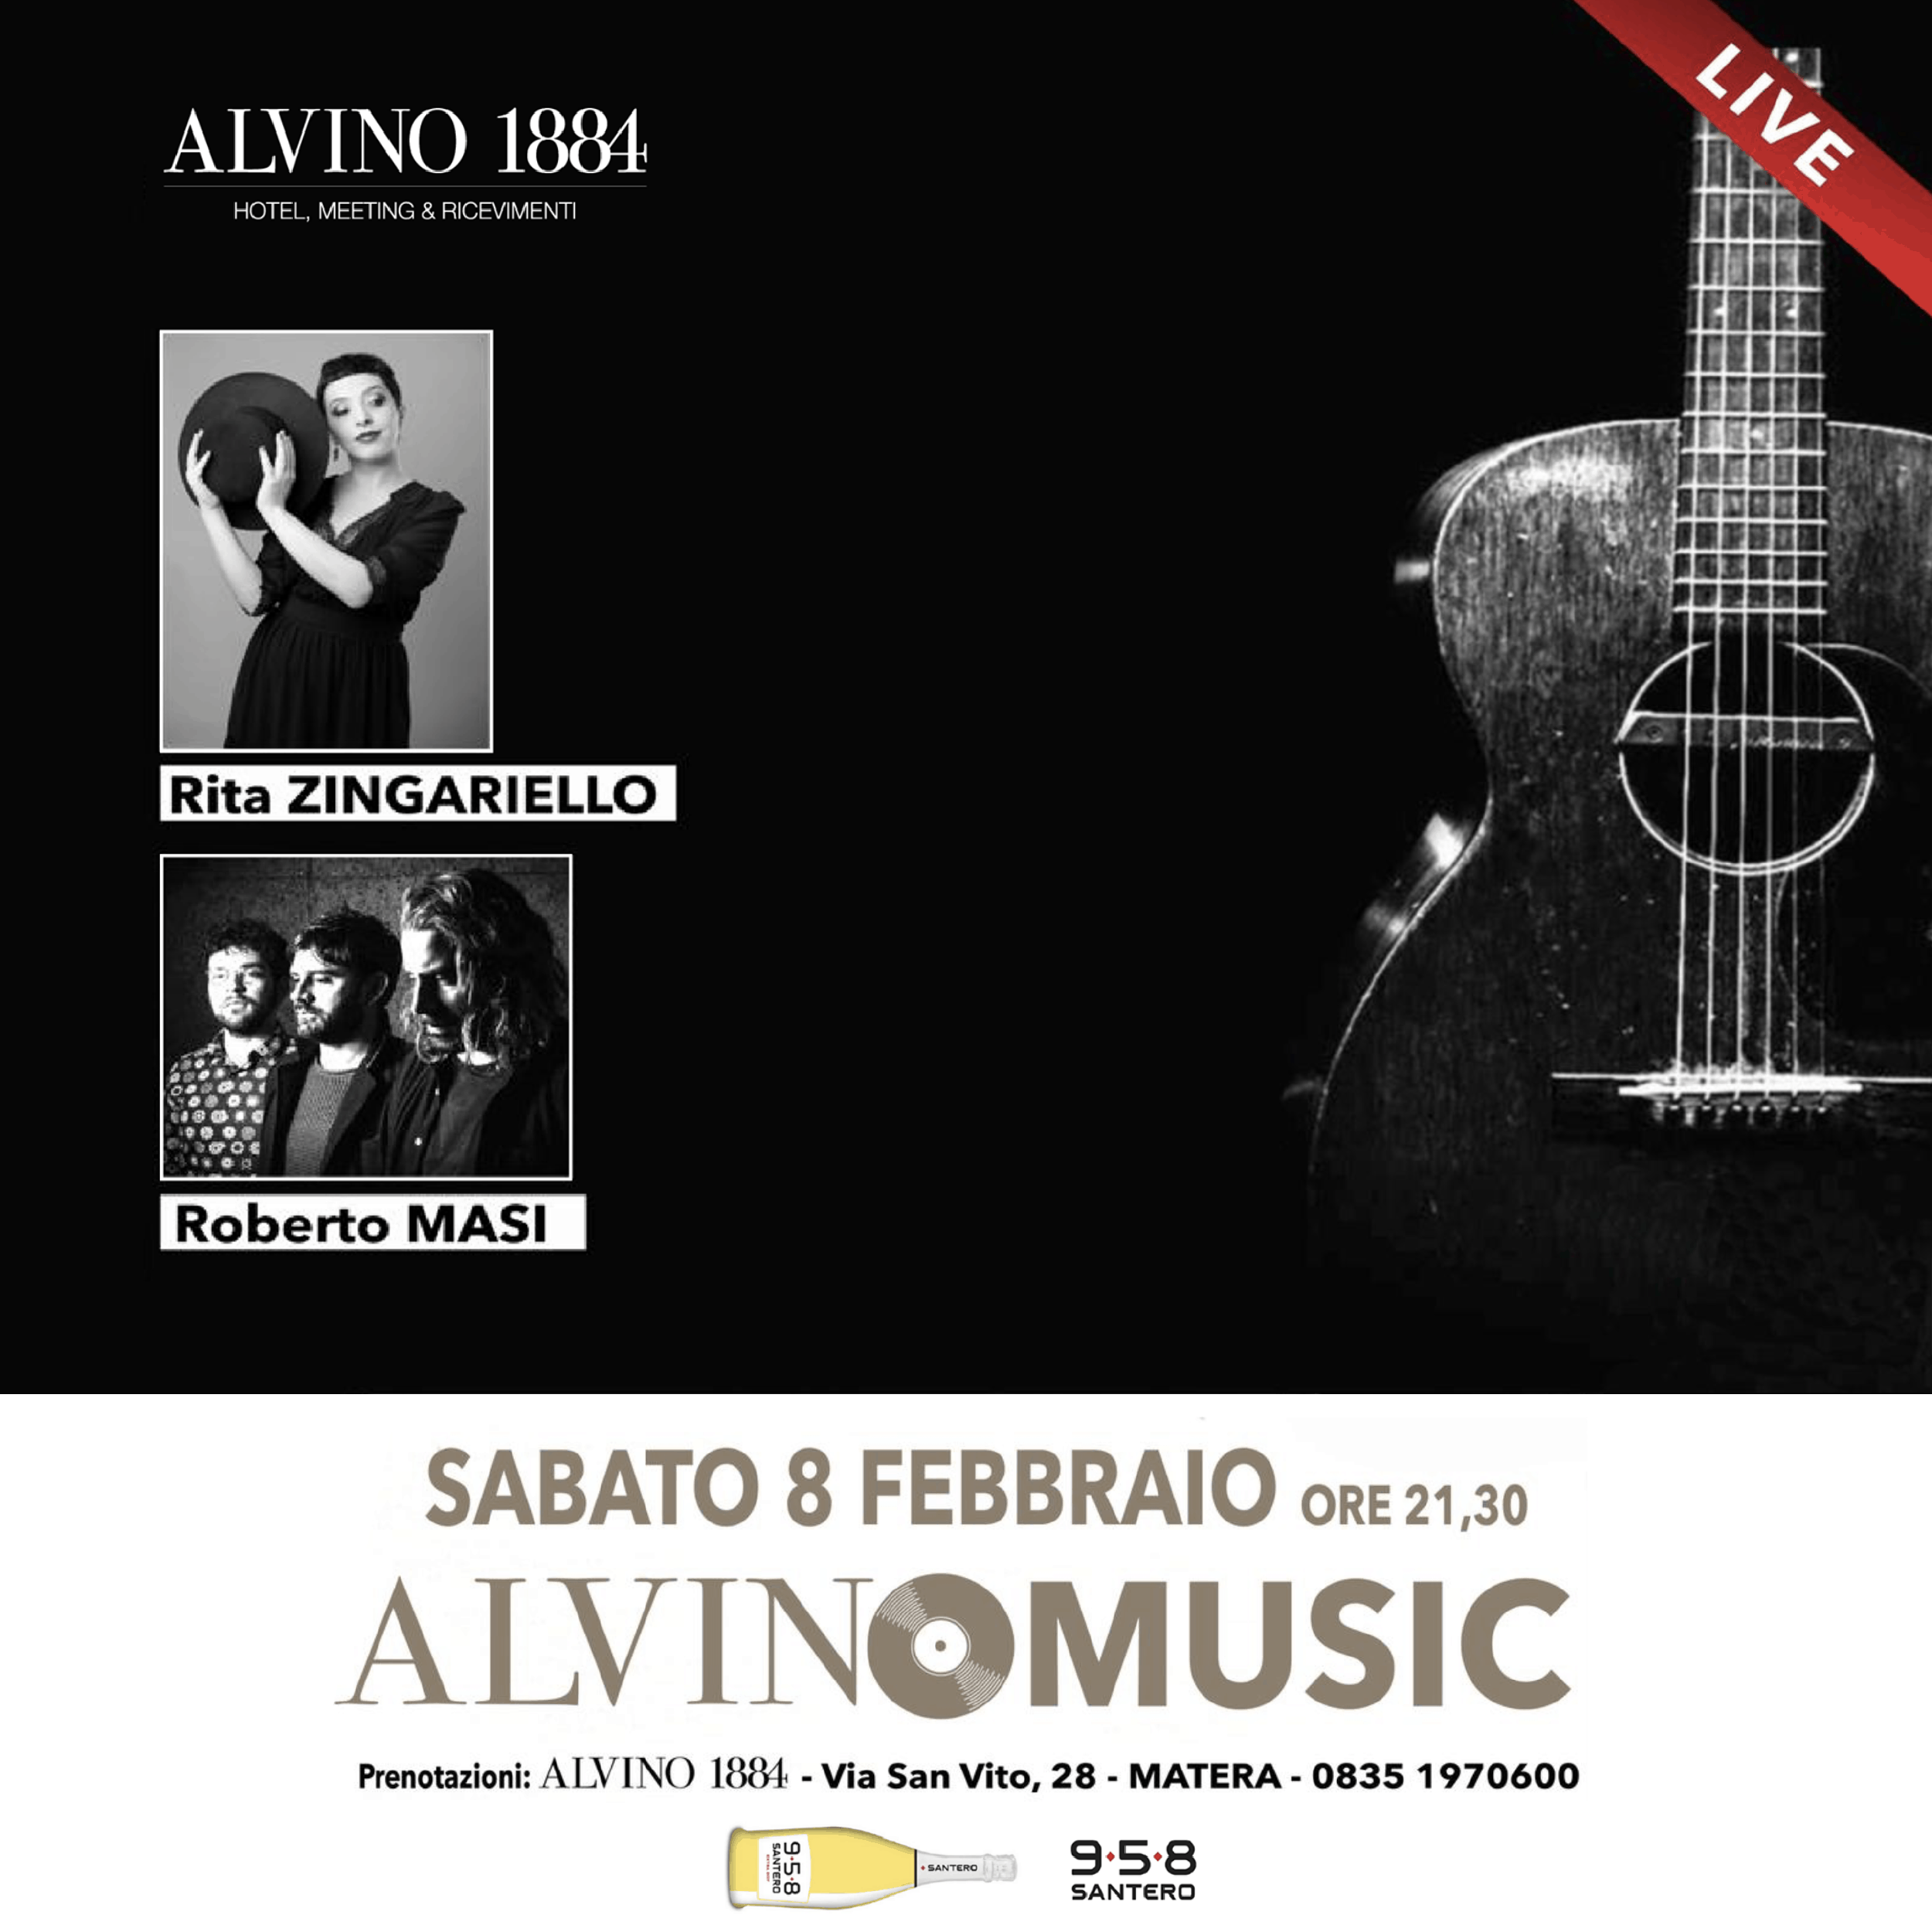 Alvino 1884 - Evento, Live Music